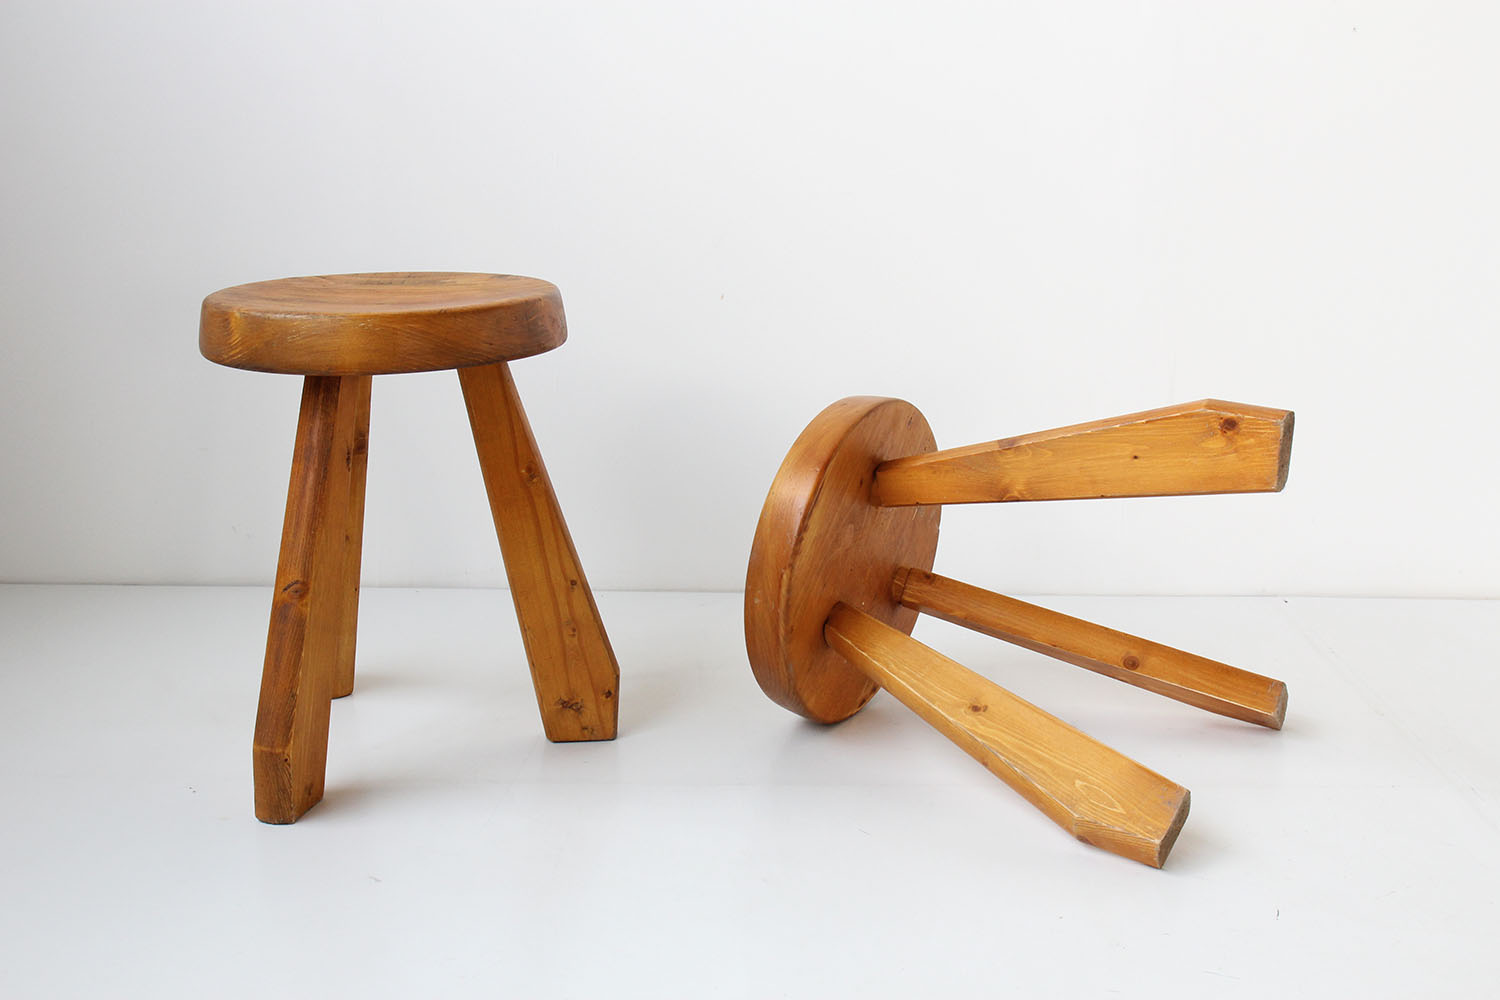 Tabouret perriand